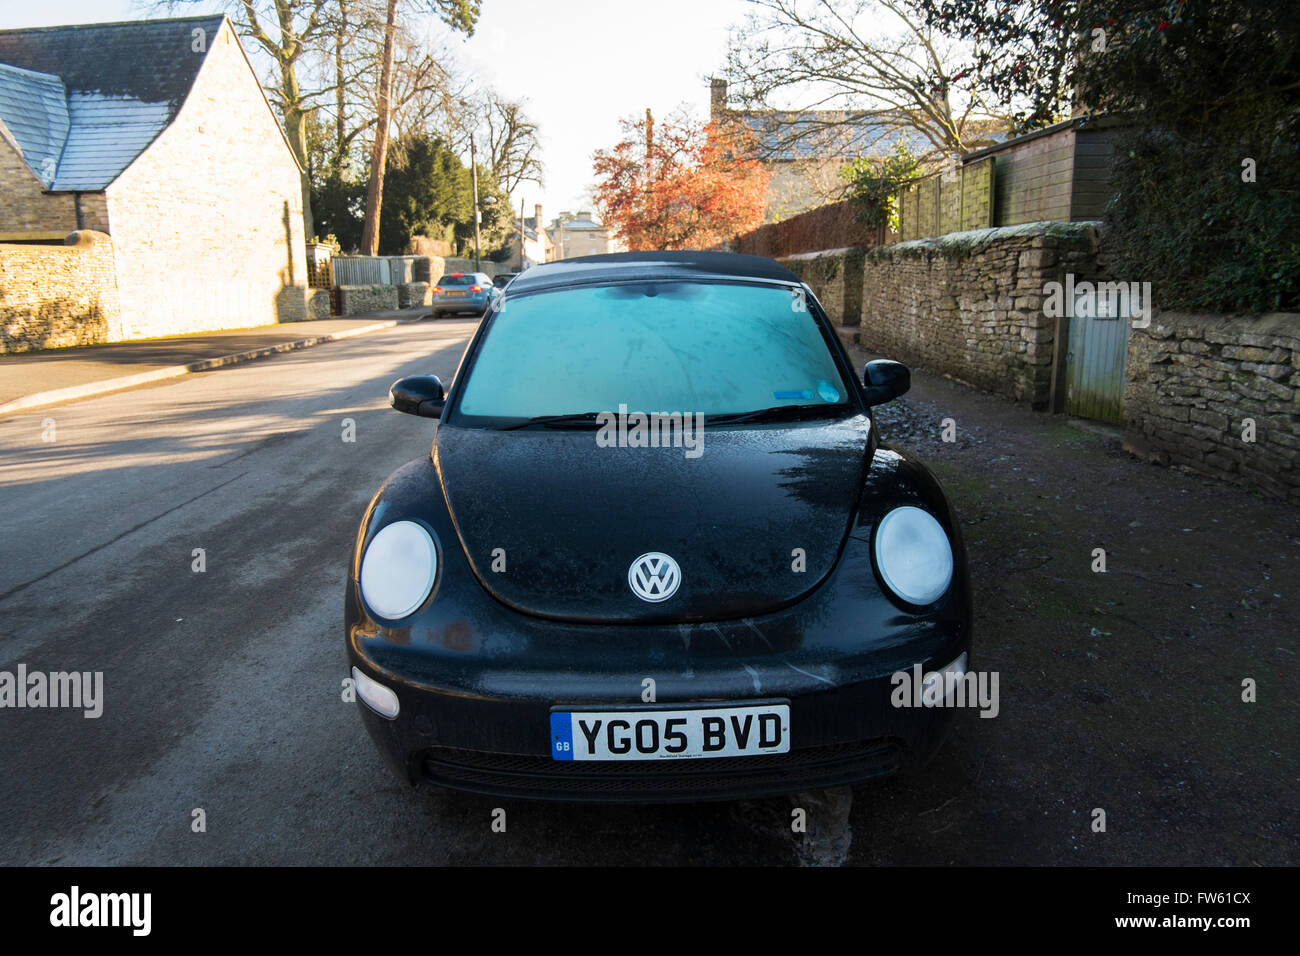 Black VW Beetle Cabriolet with frosty windscreen and headlights parked in Gloucestershire, UK - Stock Image